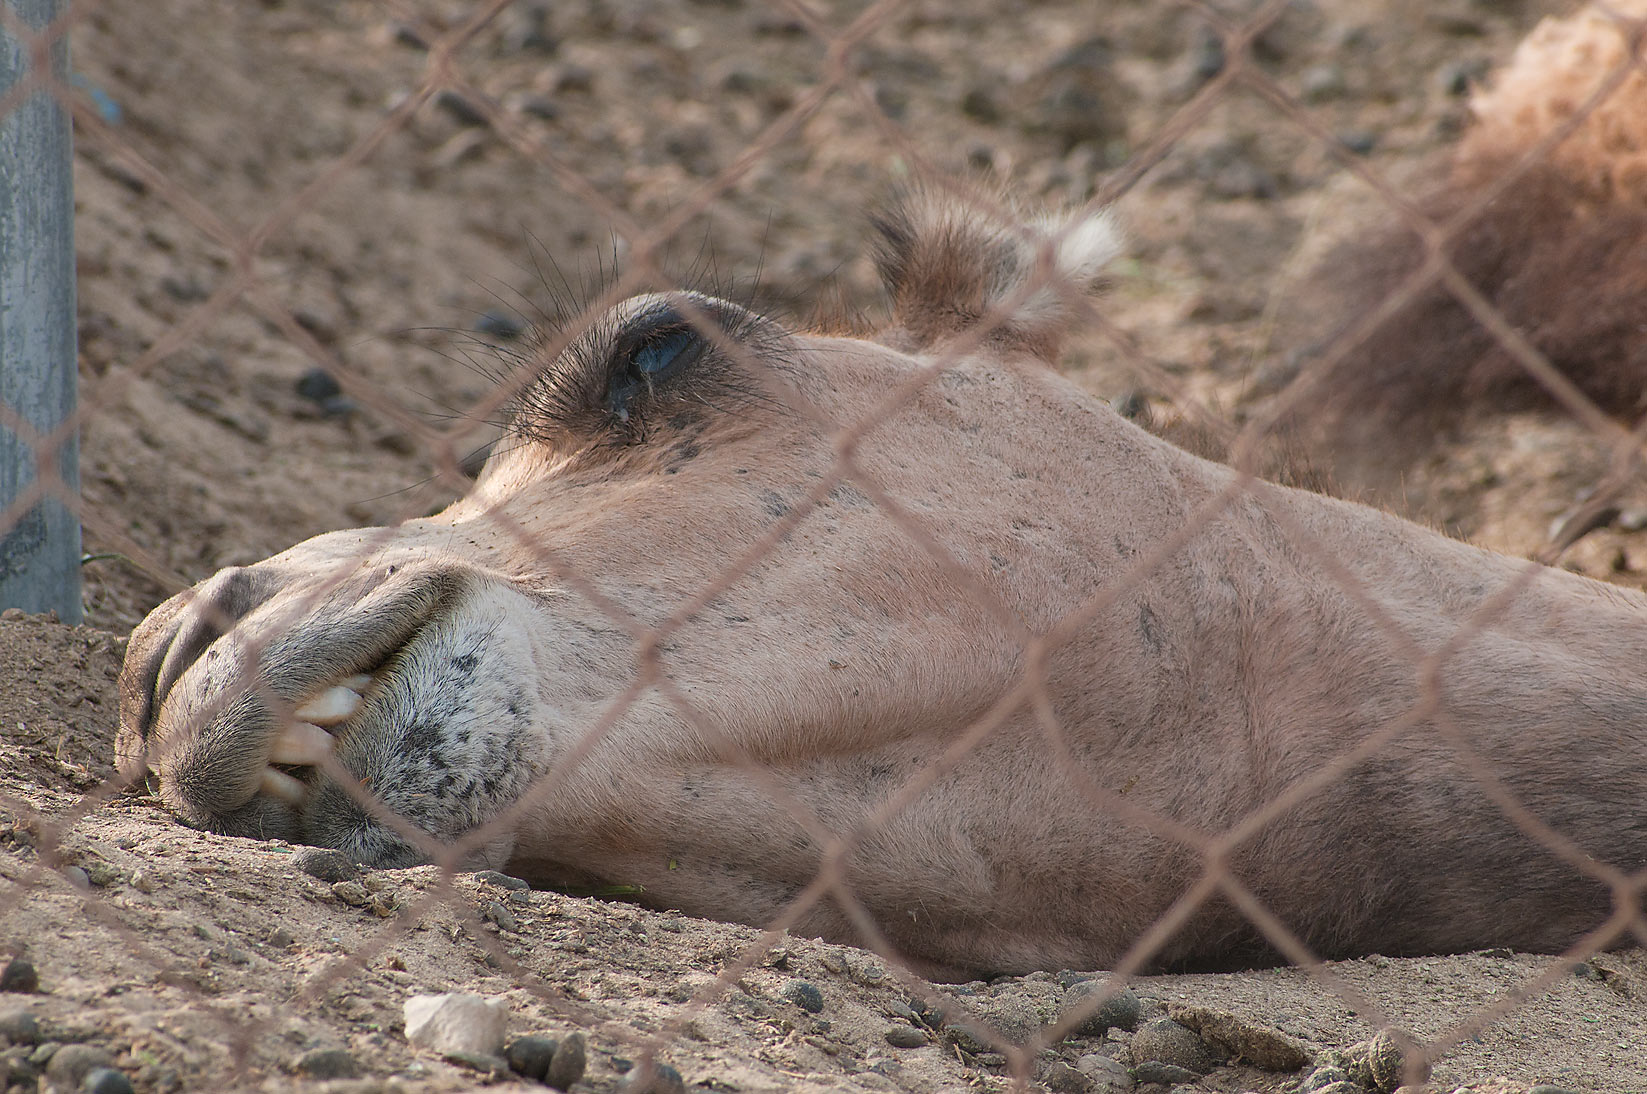 Head of sleeping camel in Camel Market, Wholesale Markets area. Doha, Qatar